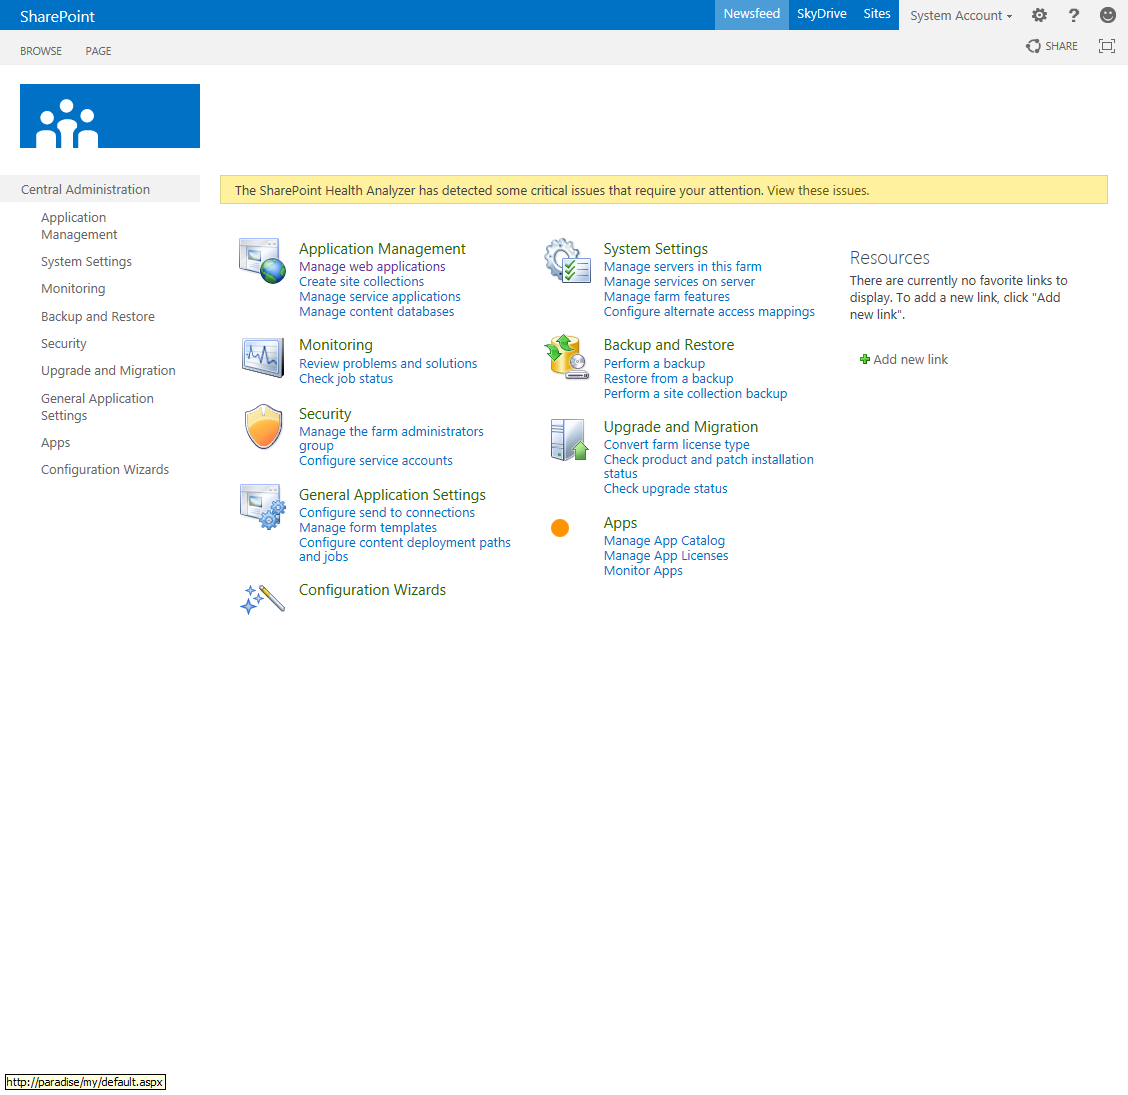 sharepoint 2013 product catalog site template - sharepoint 2013 preview installation